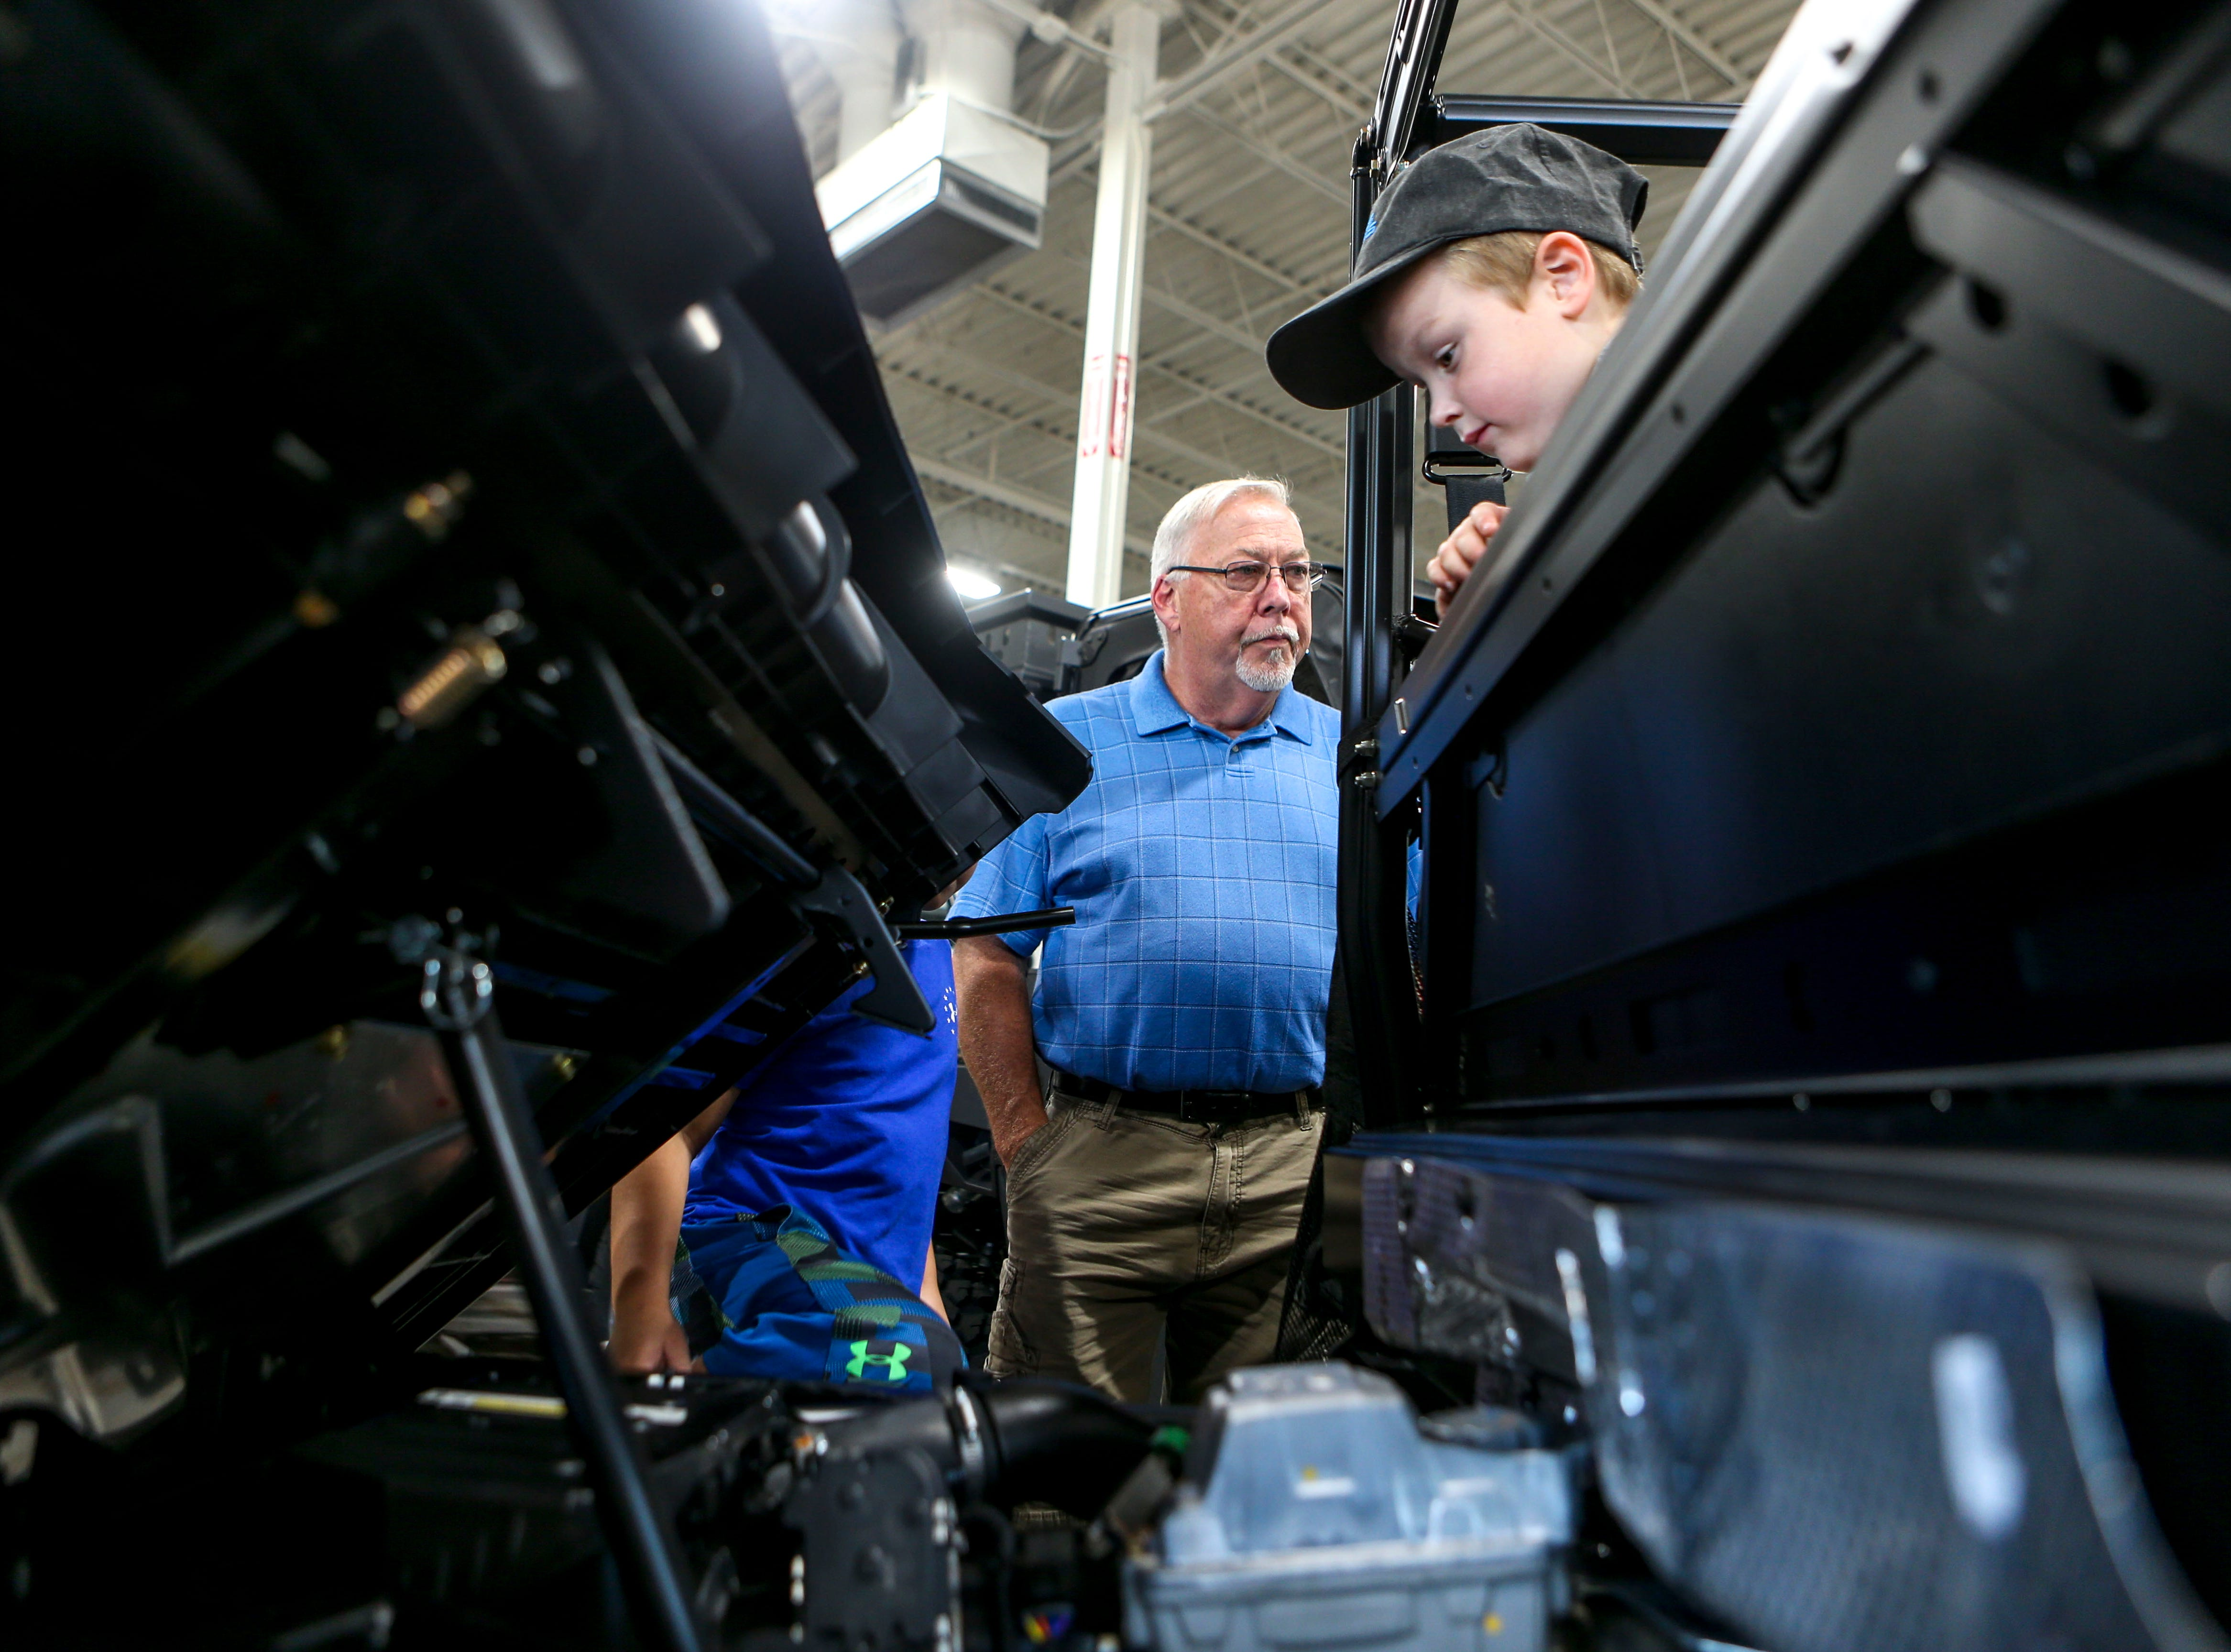 John Patrick Coleman peers into the engine compartment of a Polaris ATV as Bob Beasley provides a run down of the vehicle at Bob's House of Honda in Jackson, Tenn., on Thursday, Sept. 20, 2018.